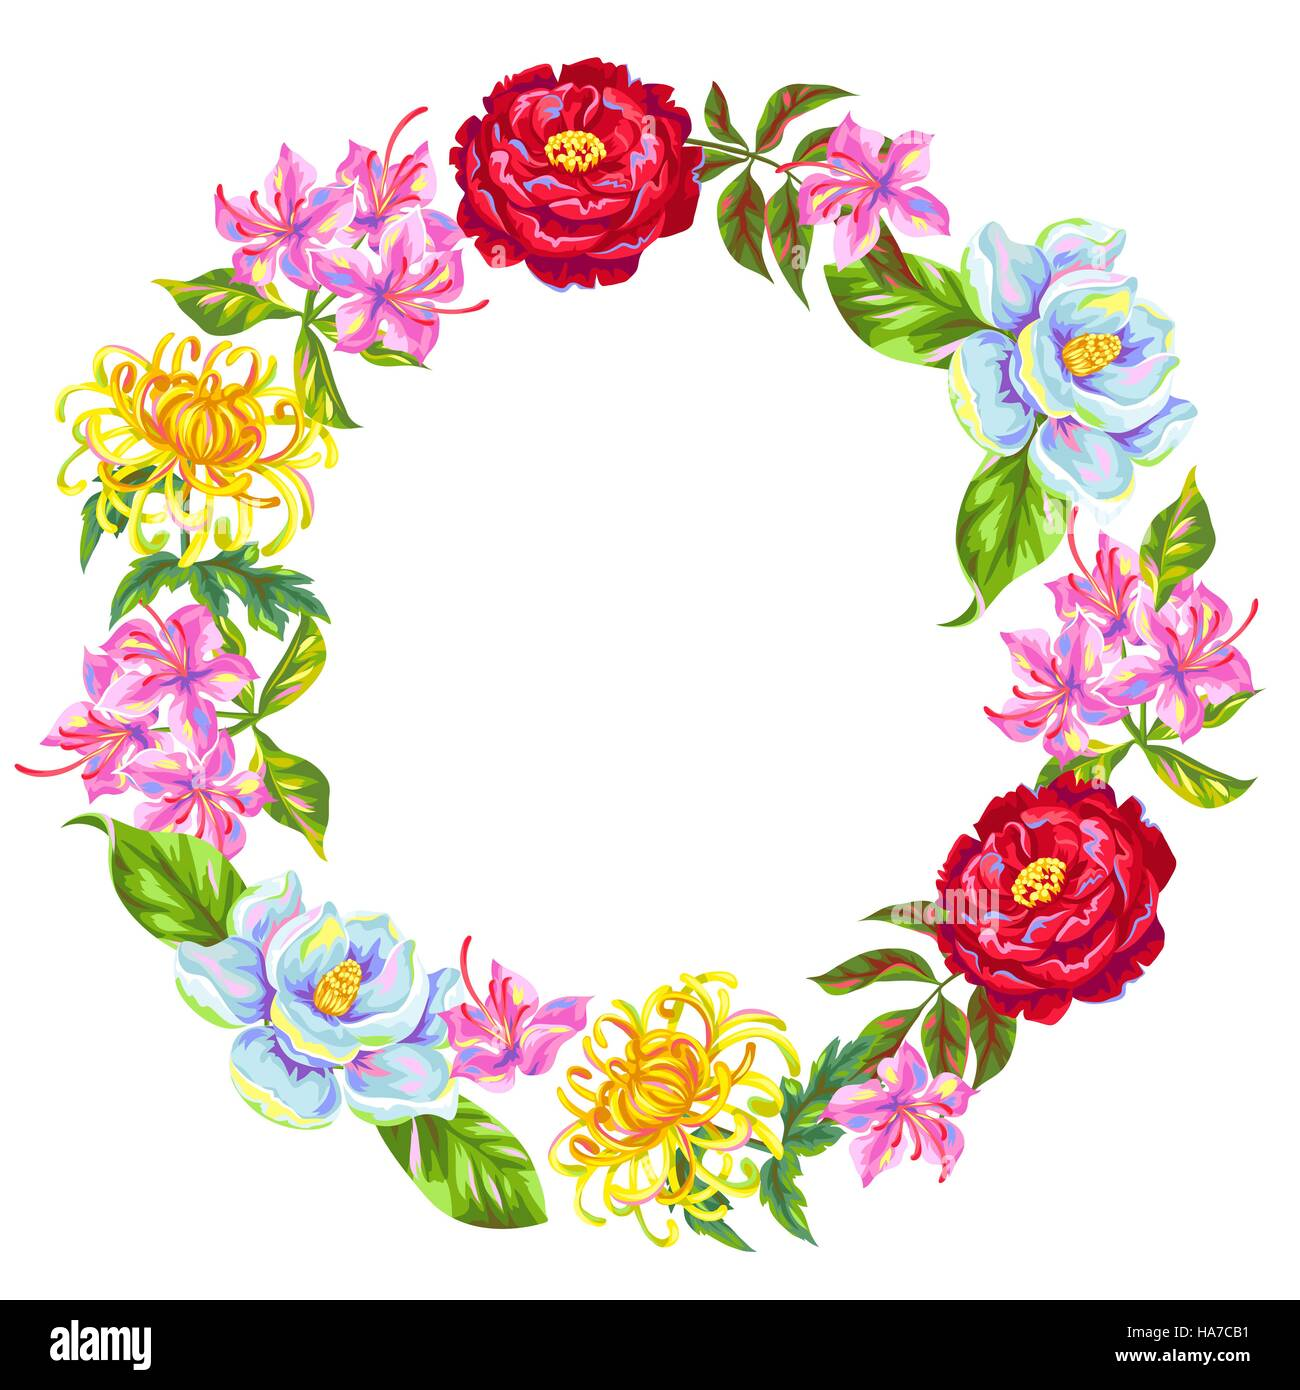 Wreath with China flowers. Bright buds of magnolia, peony, rhododendron and chrysanthemum - Stock Vector